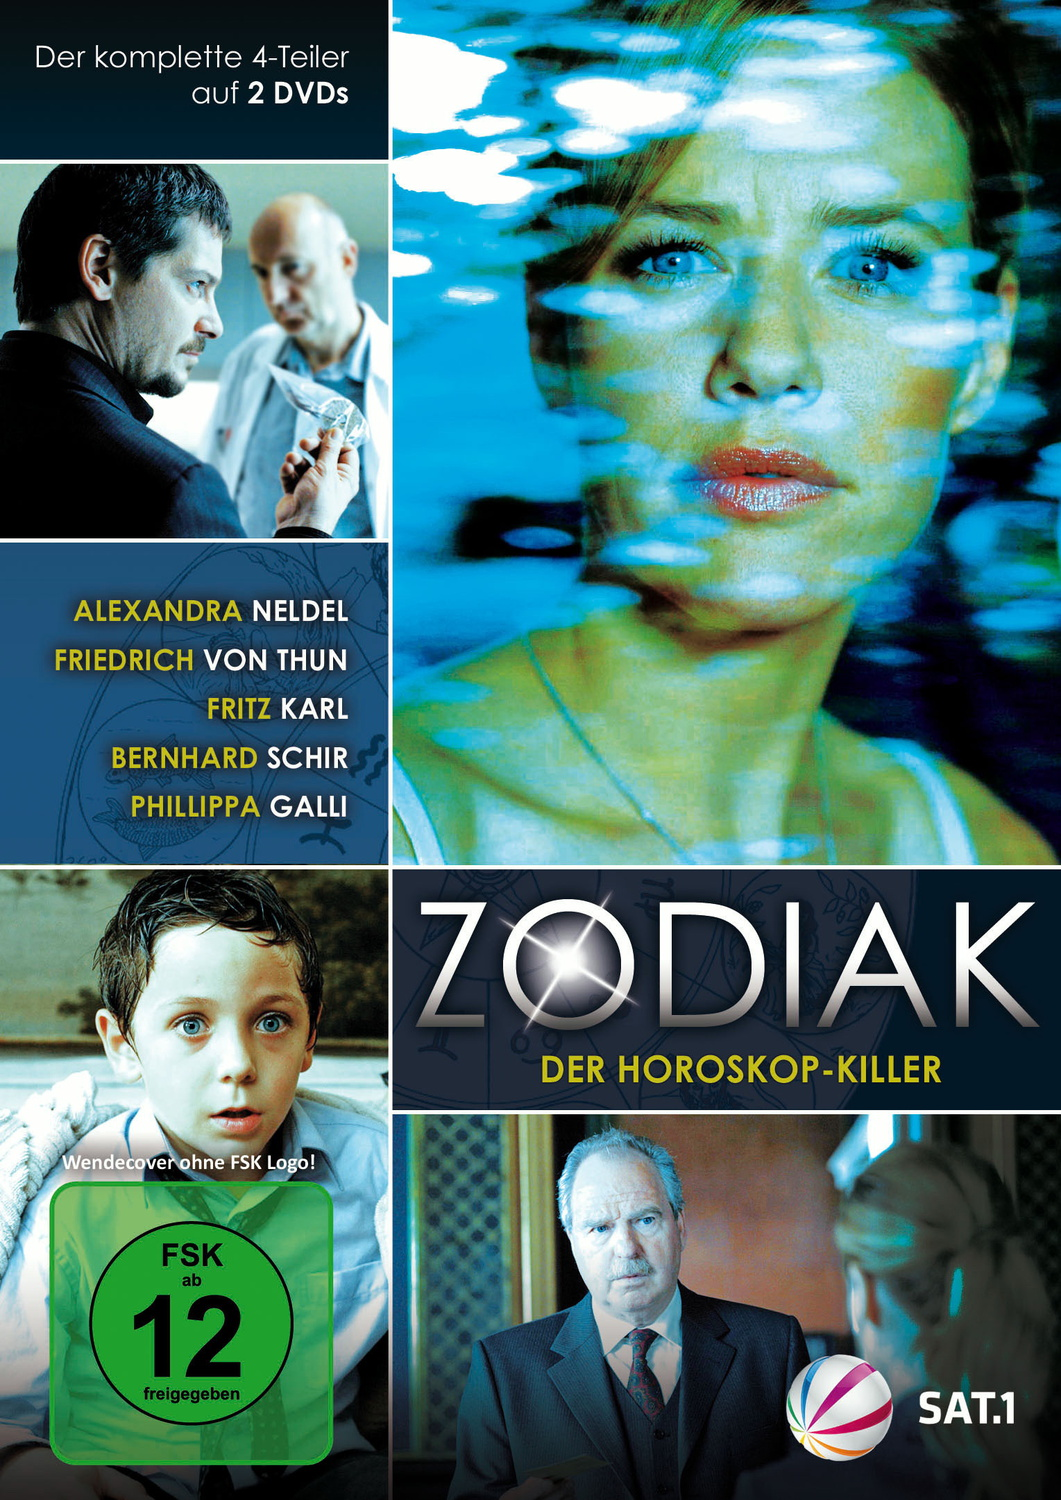 Zodiak - Der Horoskop-Killer [2 DVDs]